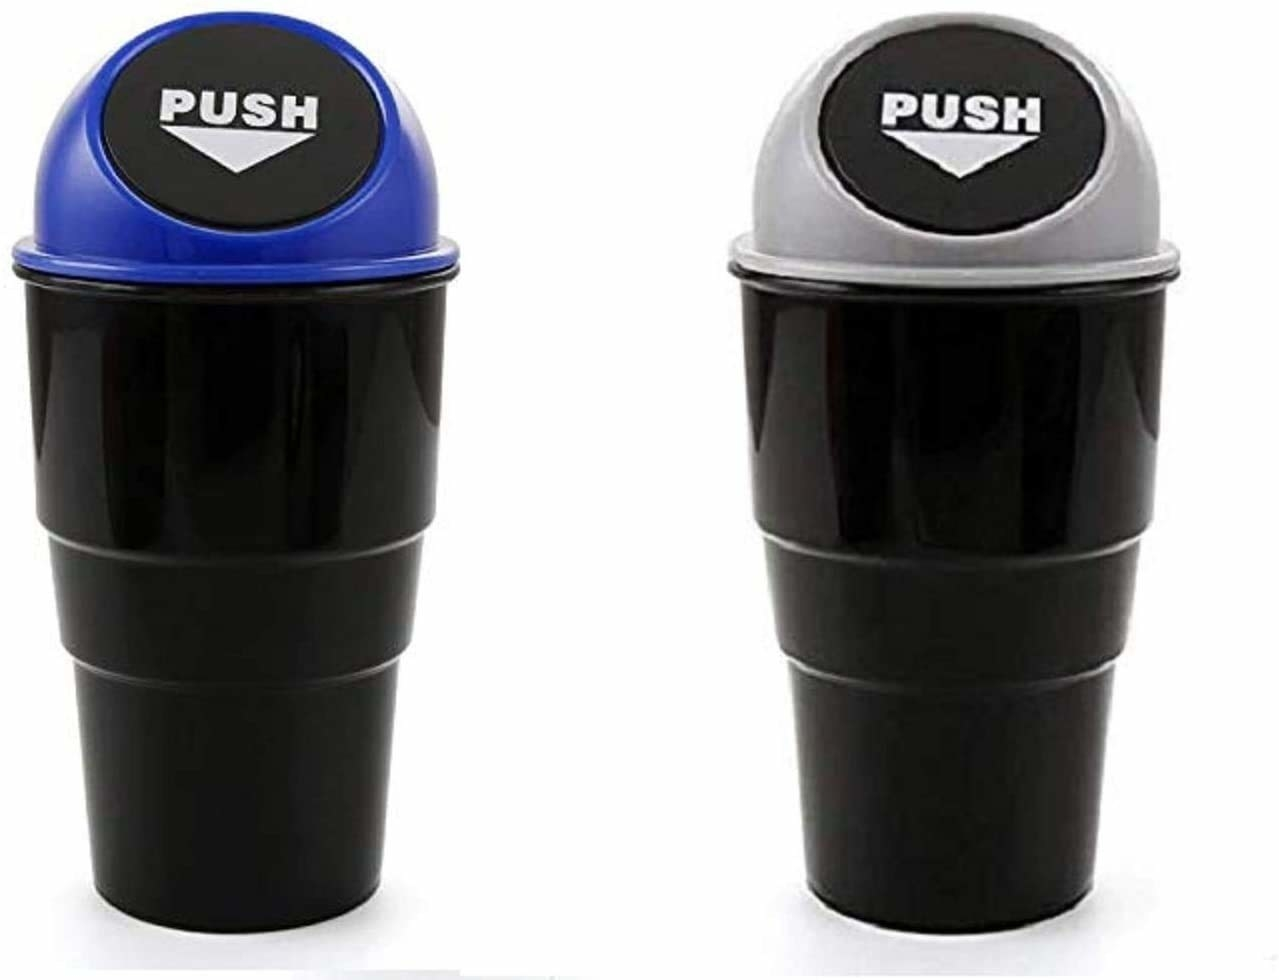 Two mini trash cans